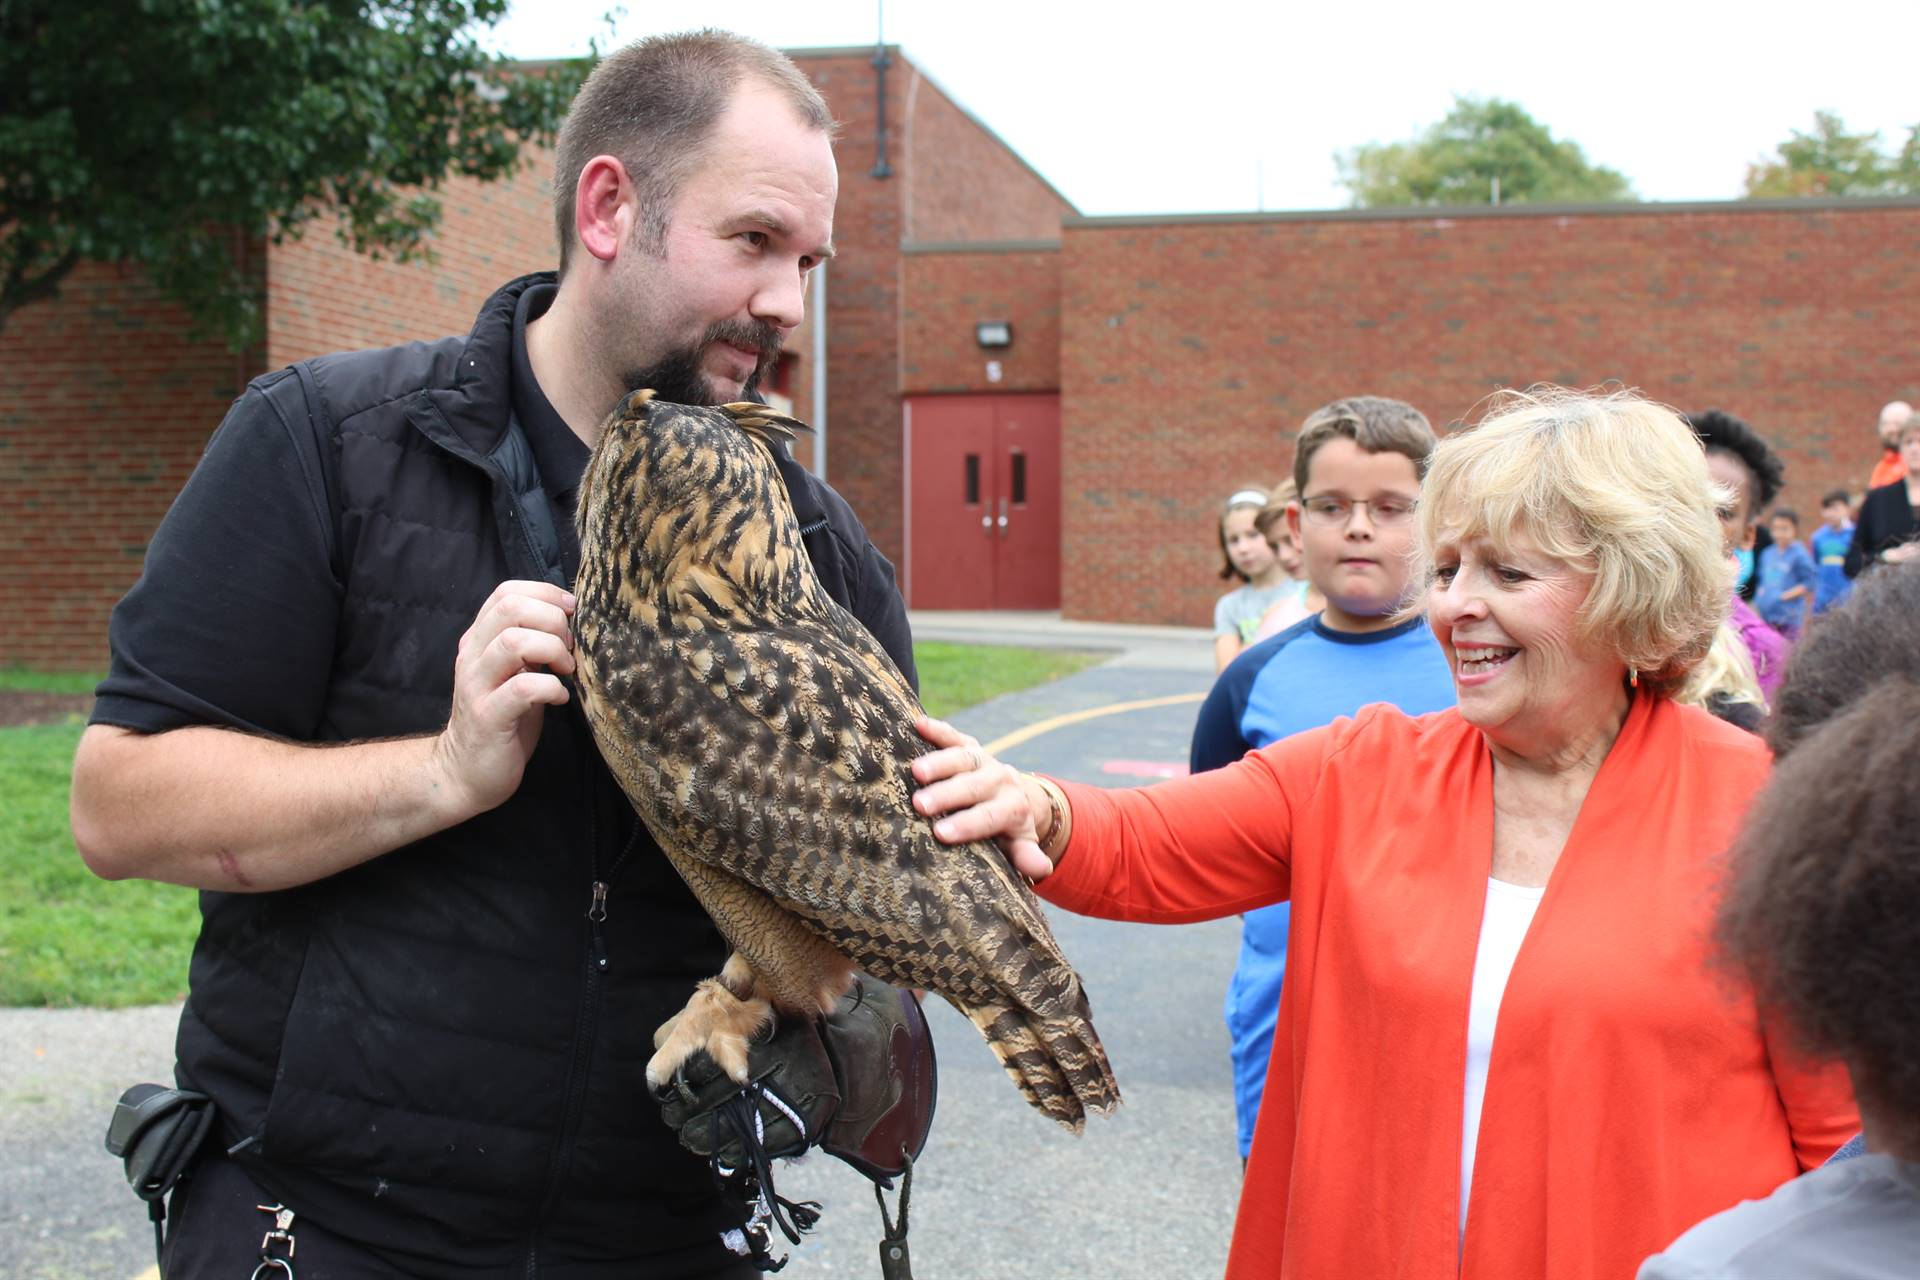 Mrs. Strotz petting the owl